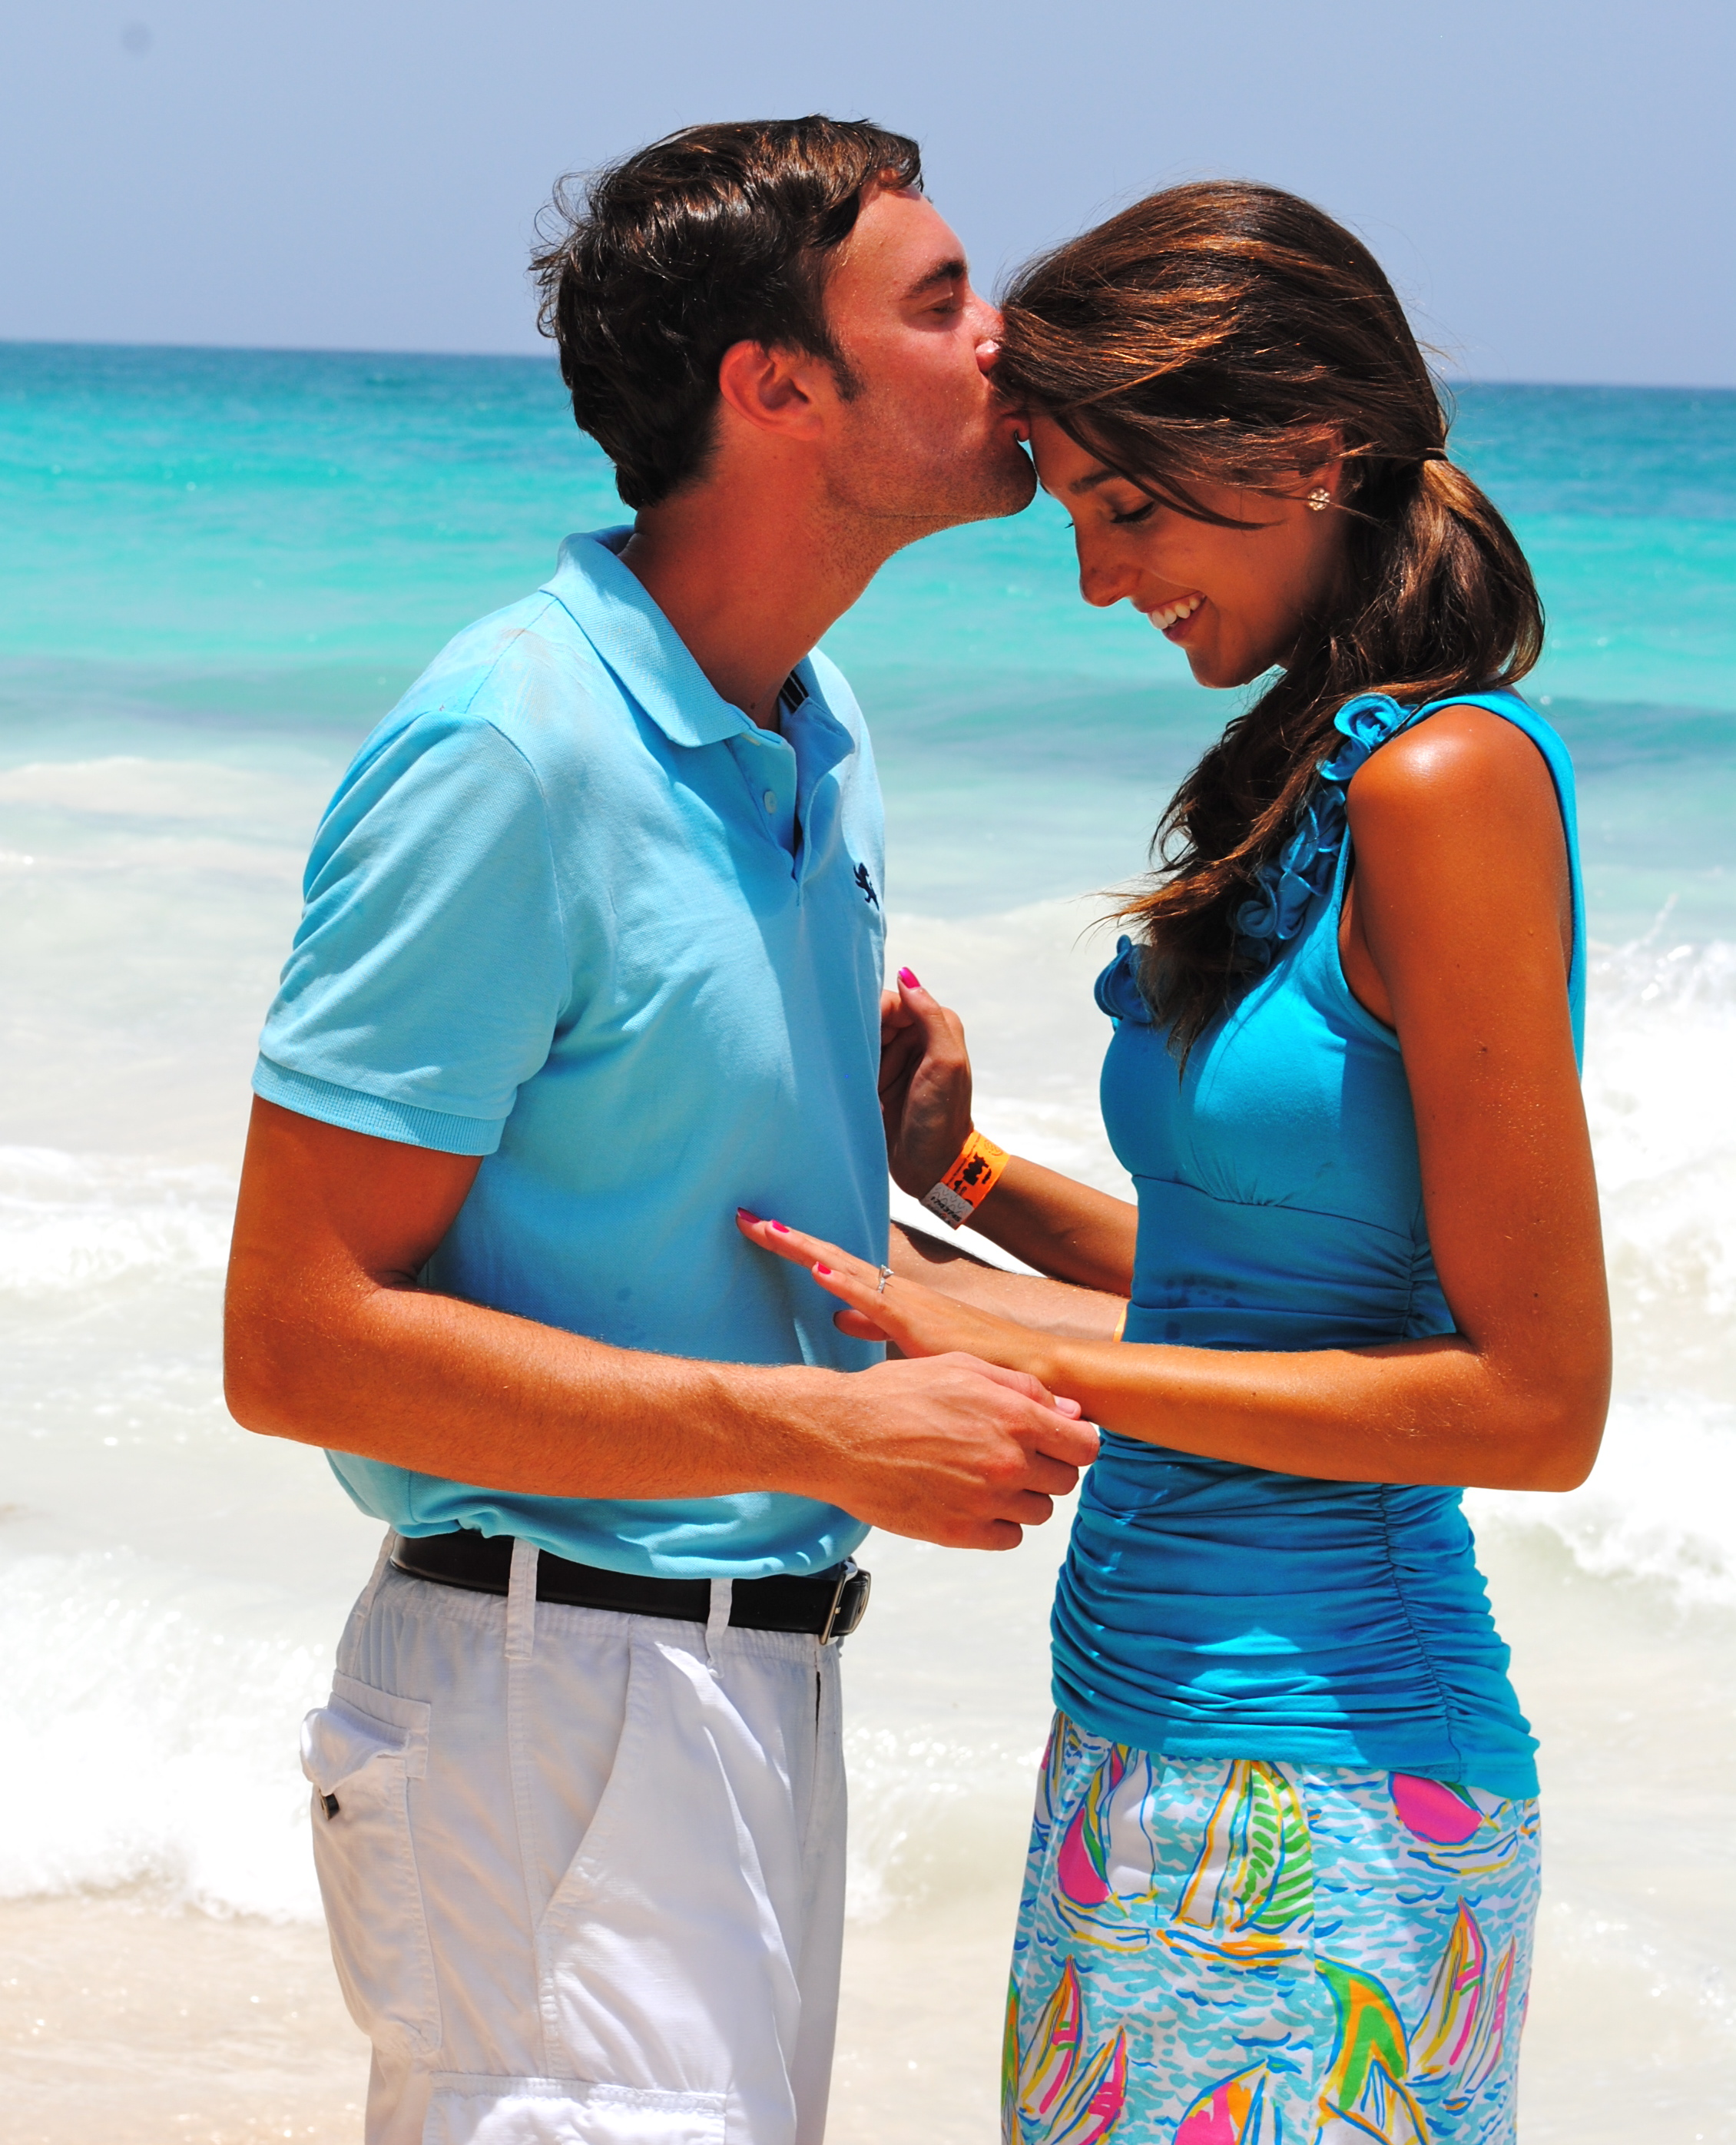 Image 6 of Lindsey and Mark | College Sweethearts